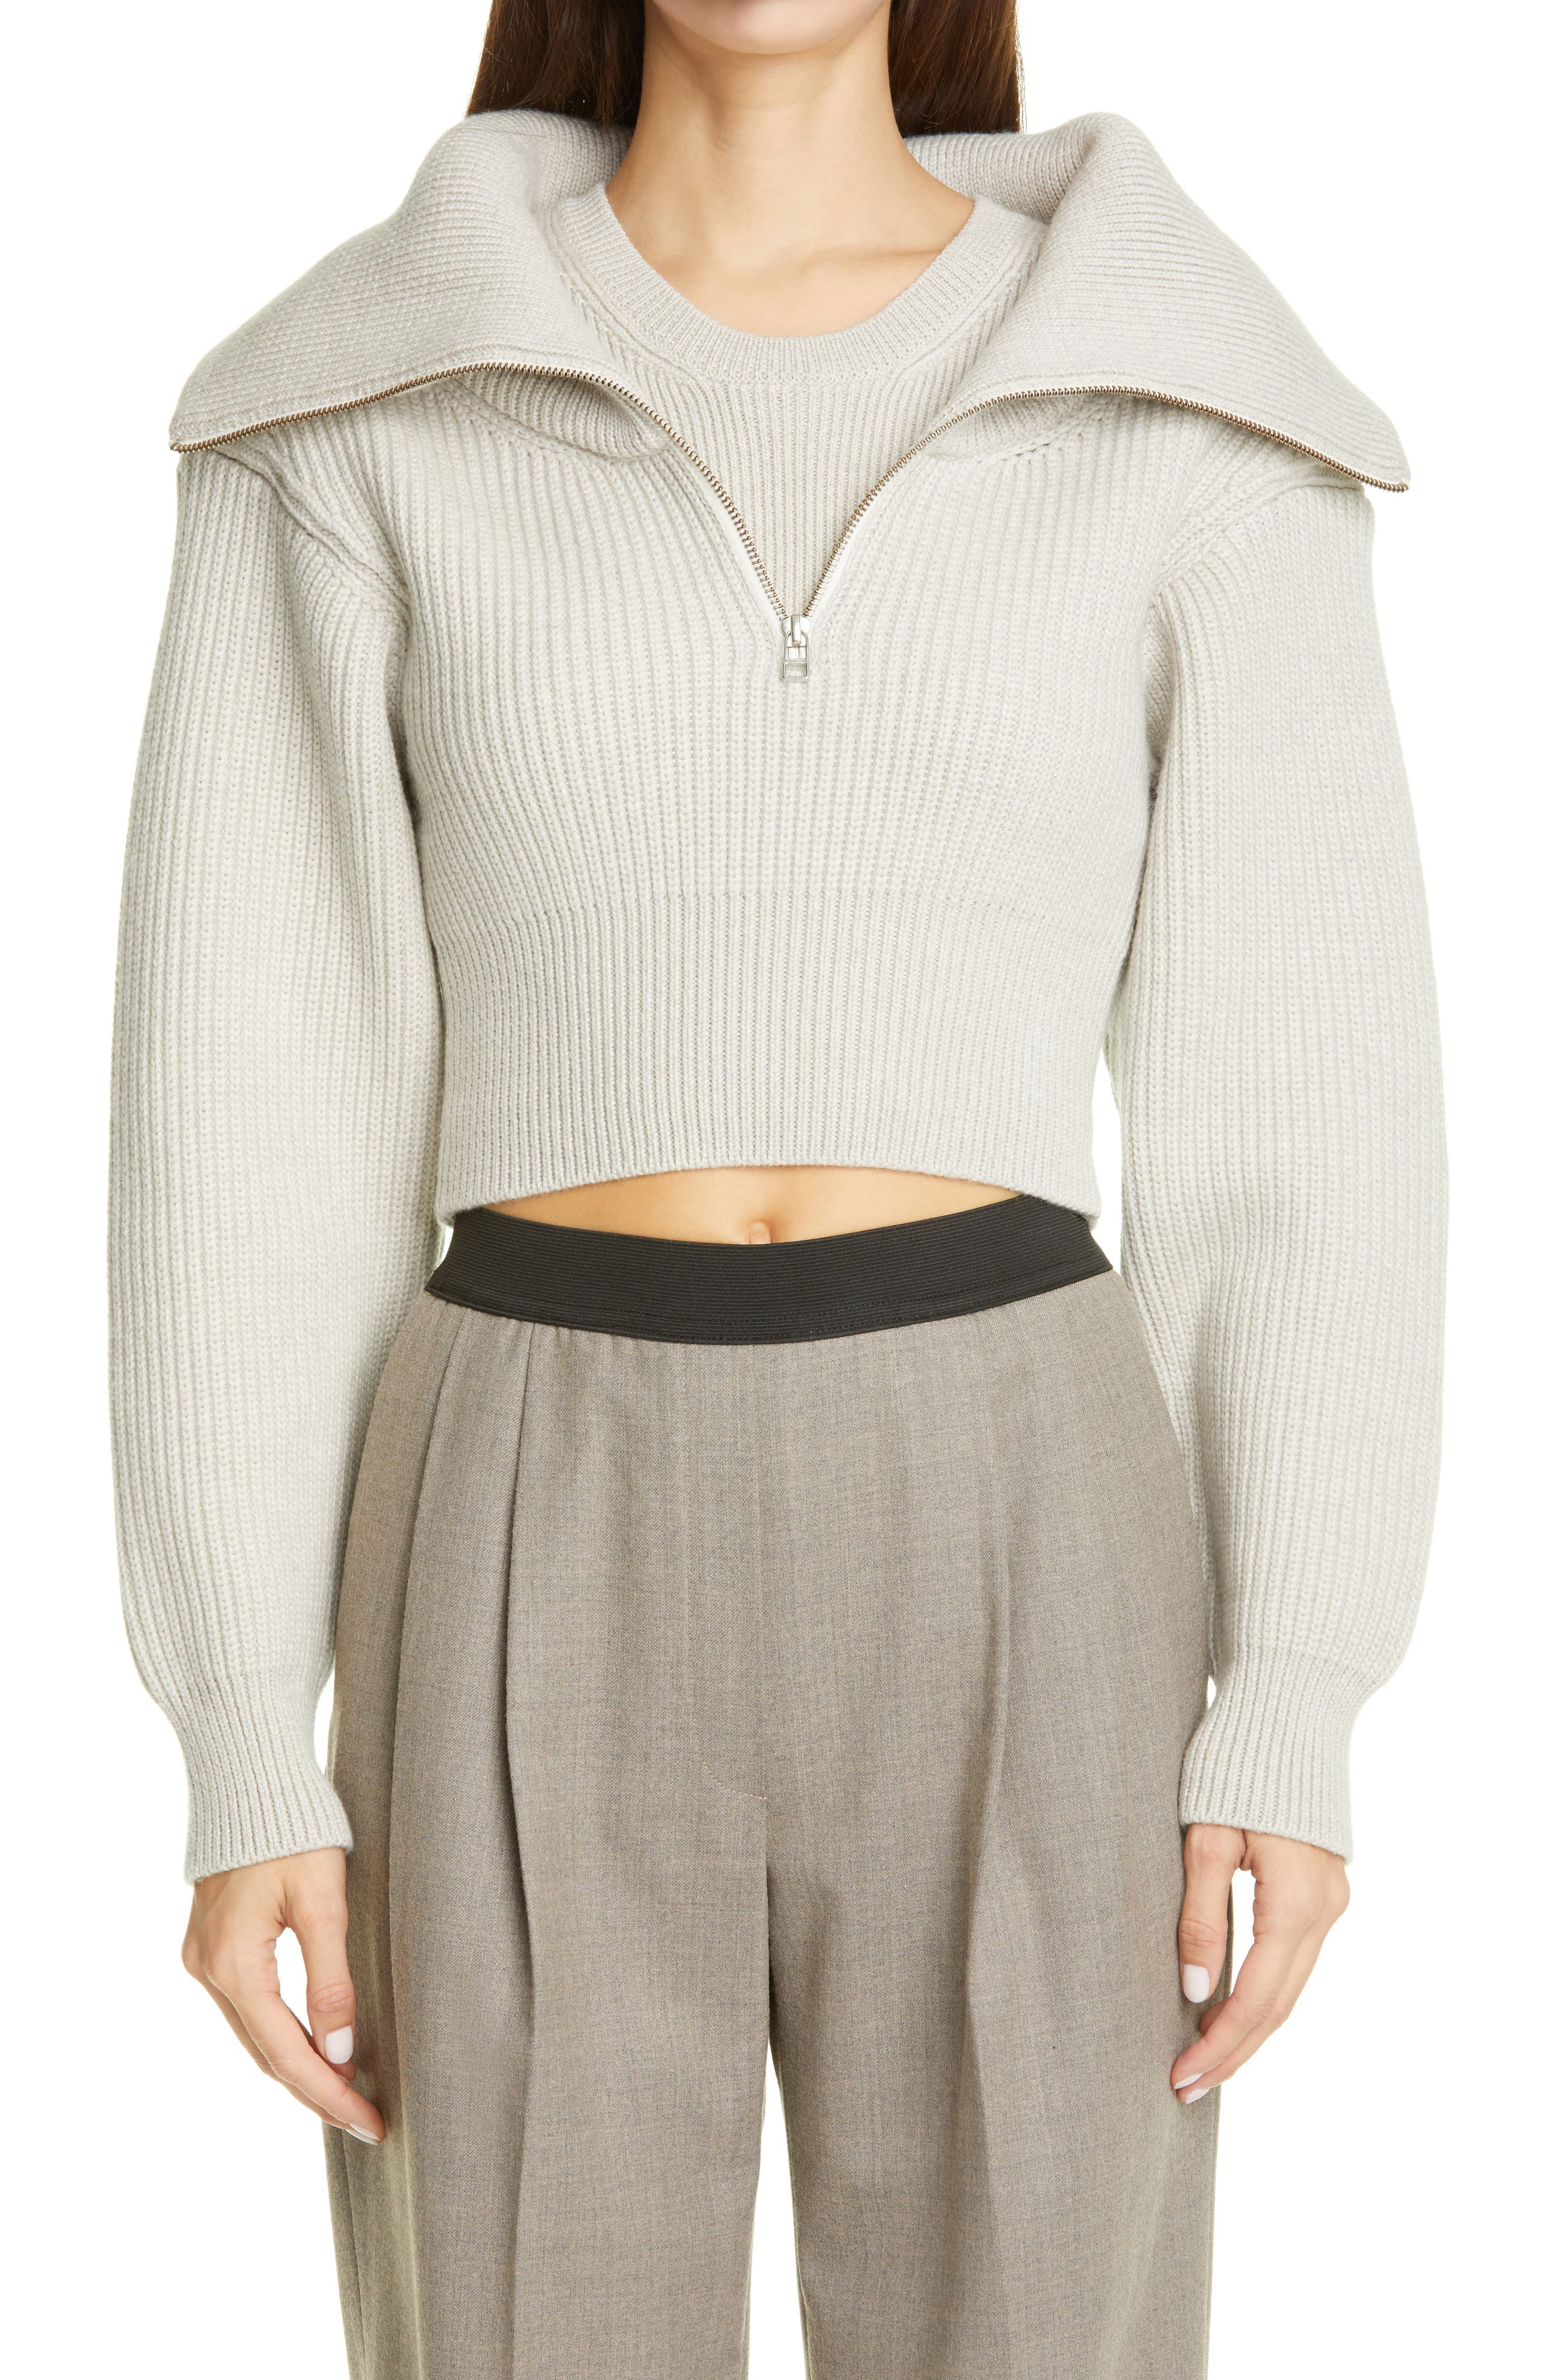 A quarter zip reveals another layer to the cozy shaker-stitch sweater that\\\'s cropped for a a cool, contemporary look. Style Name: Jacquemus Risoul Merino Wool Layered Crop Sweater. Style Number: 6056071. Available in stores.